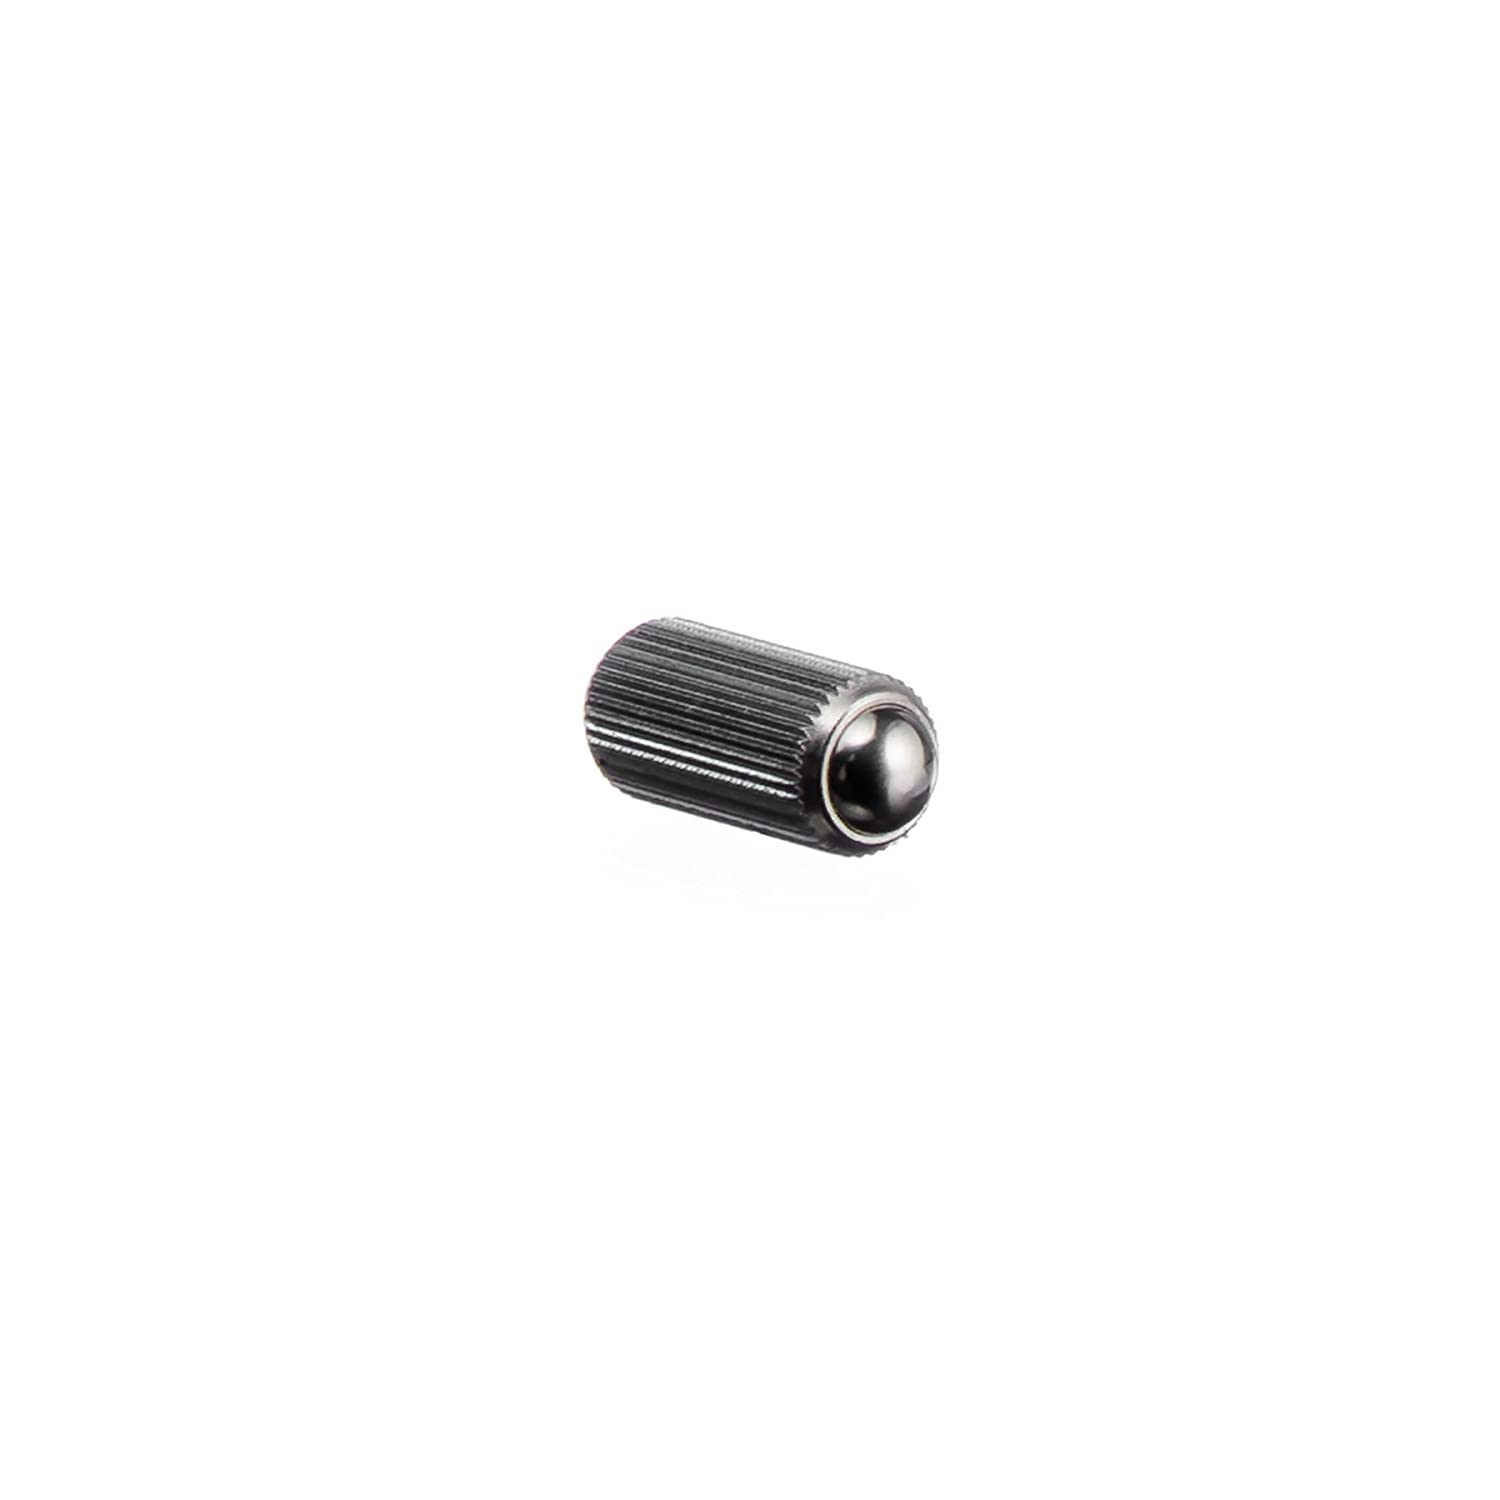 Vlier SPFBK55 Stainless Steel knurled Press-Fit Ball Plunger 0.316 Outside Thread